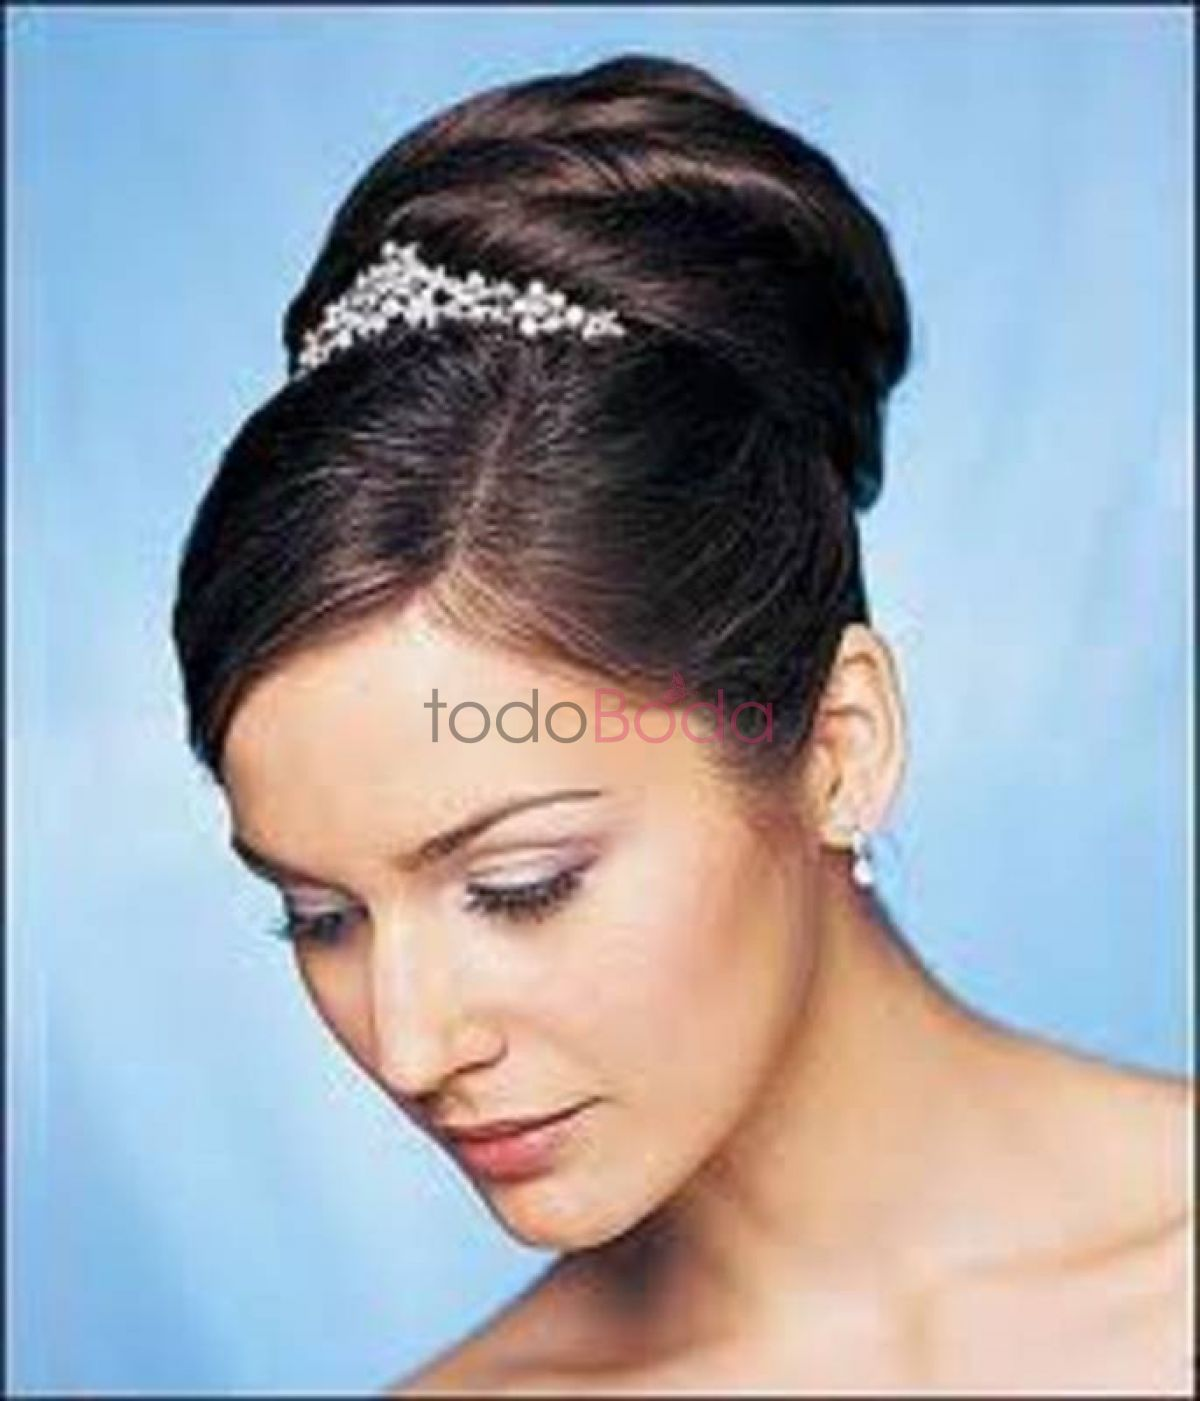 Tu boda en Fashion Look 1